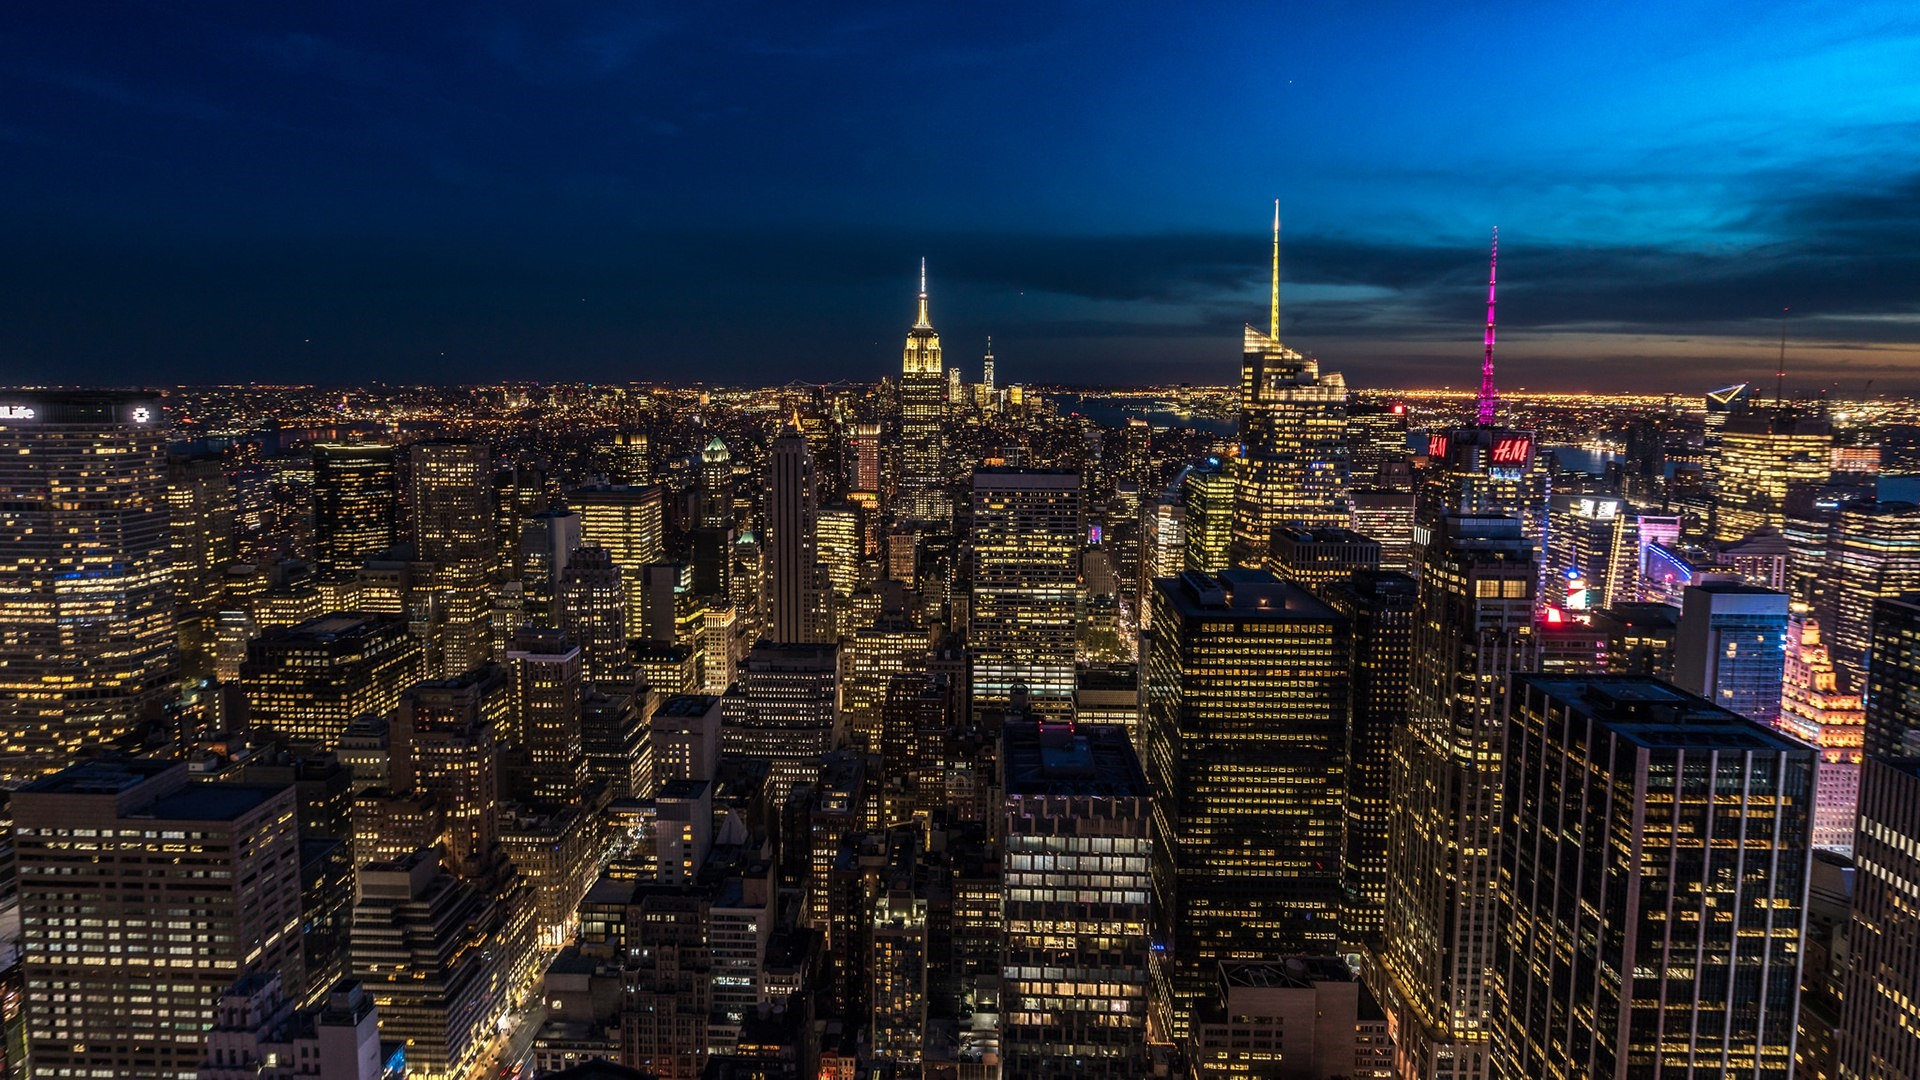 New York City skyline with the Empire State Building wallpaper